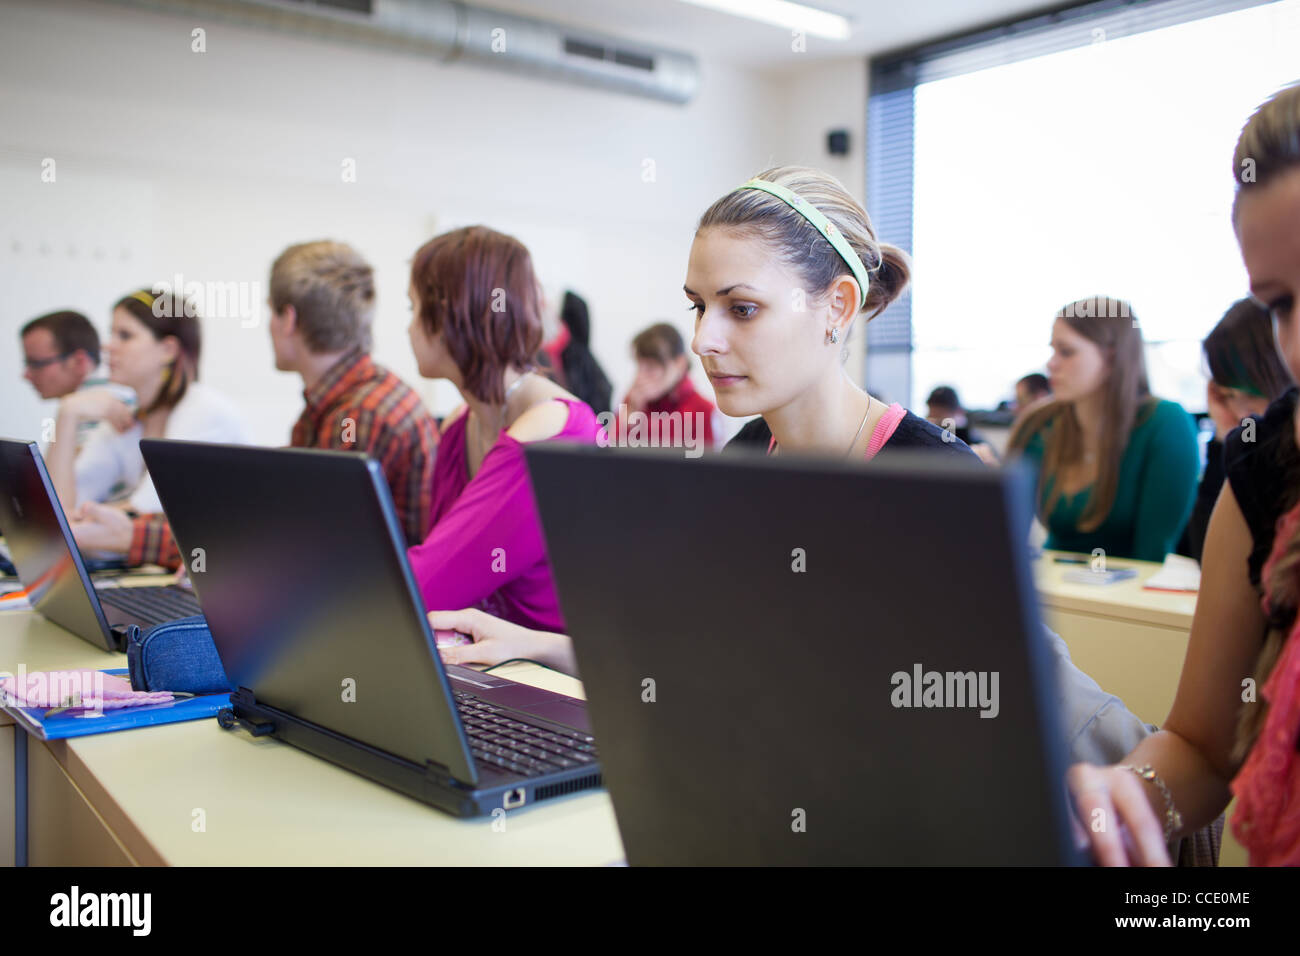 college students sitting in a classroom, using laptop computers during class (shallow DOF) Stock Photo